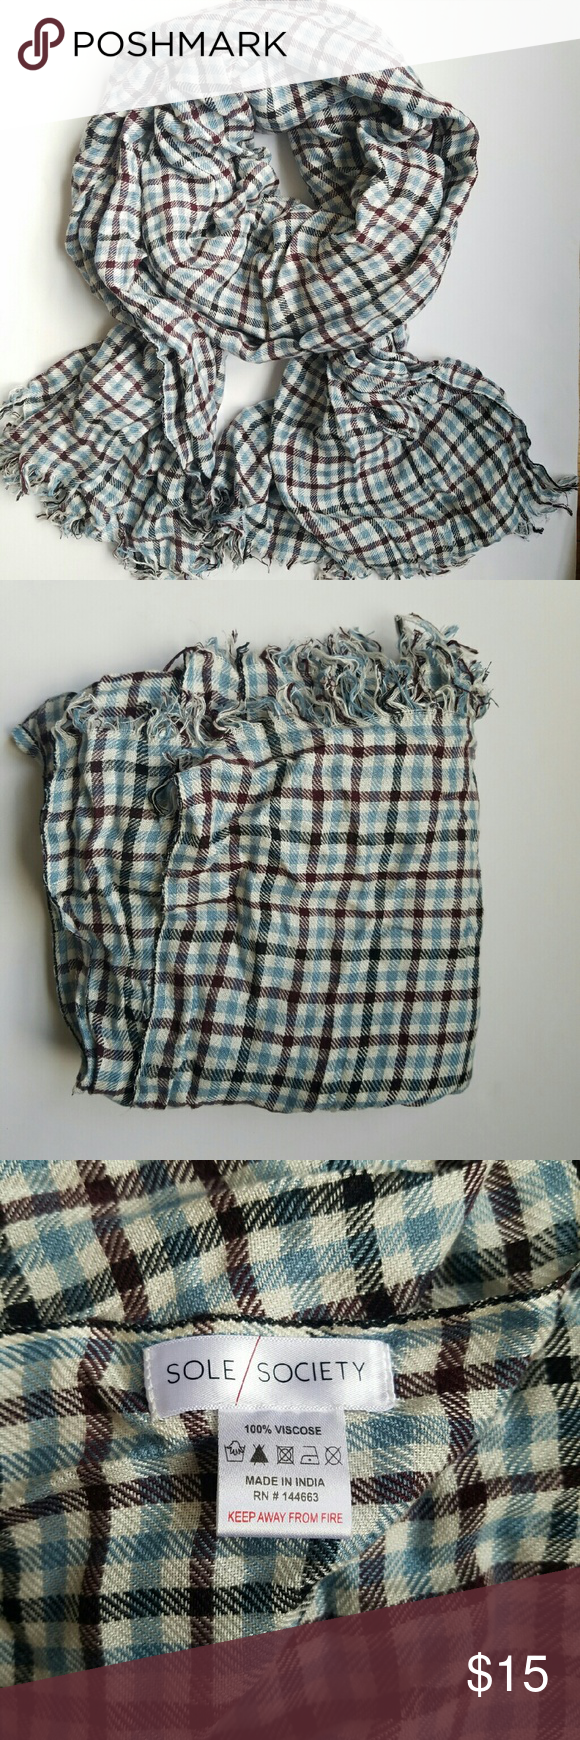 Sole Society for Nordstrom XL Gingham Scarf Scarf was worn twice last fall. Has a few unnoticeable snags, but easily smooth out. Extra long rectangular shape. 100% viscose, extremely soft Nordstrom Accessories Scarves & Wraps